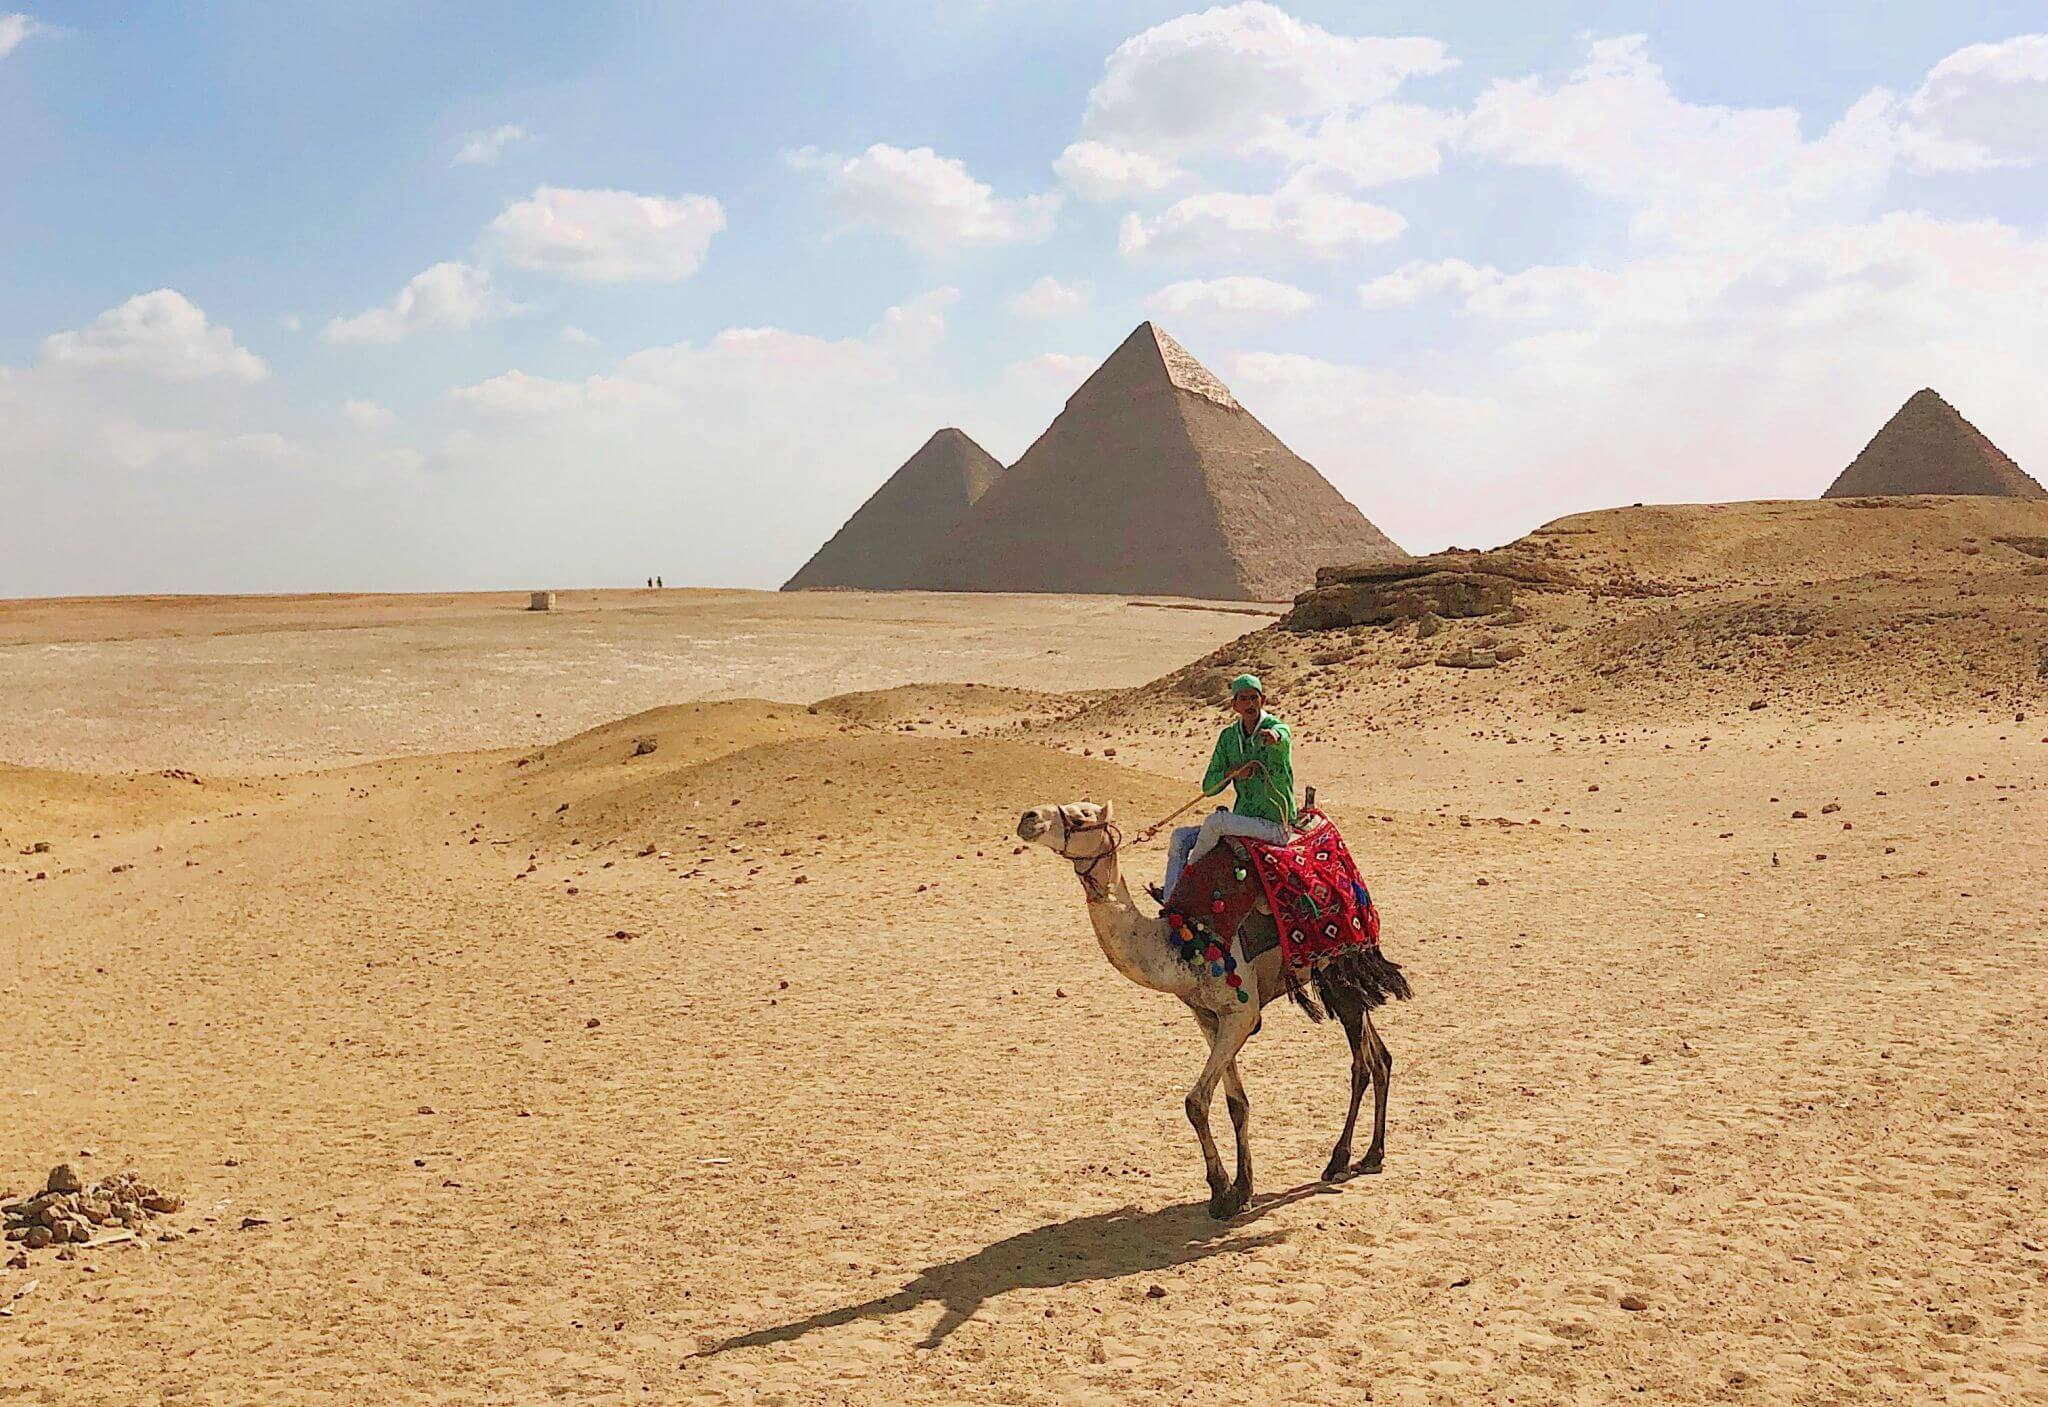 image of a camel in front of the Pyramids of Giza, one of the reasons you need to visit Egypt